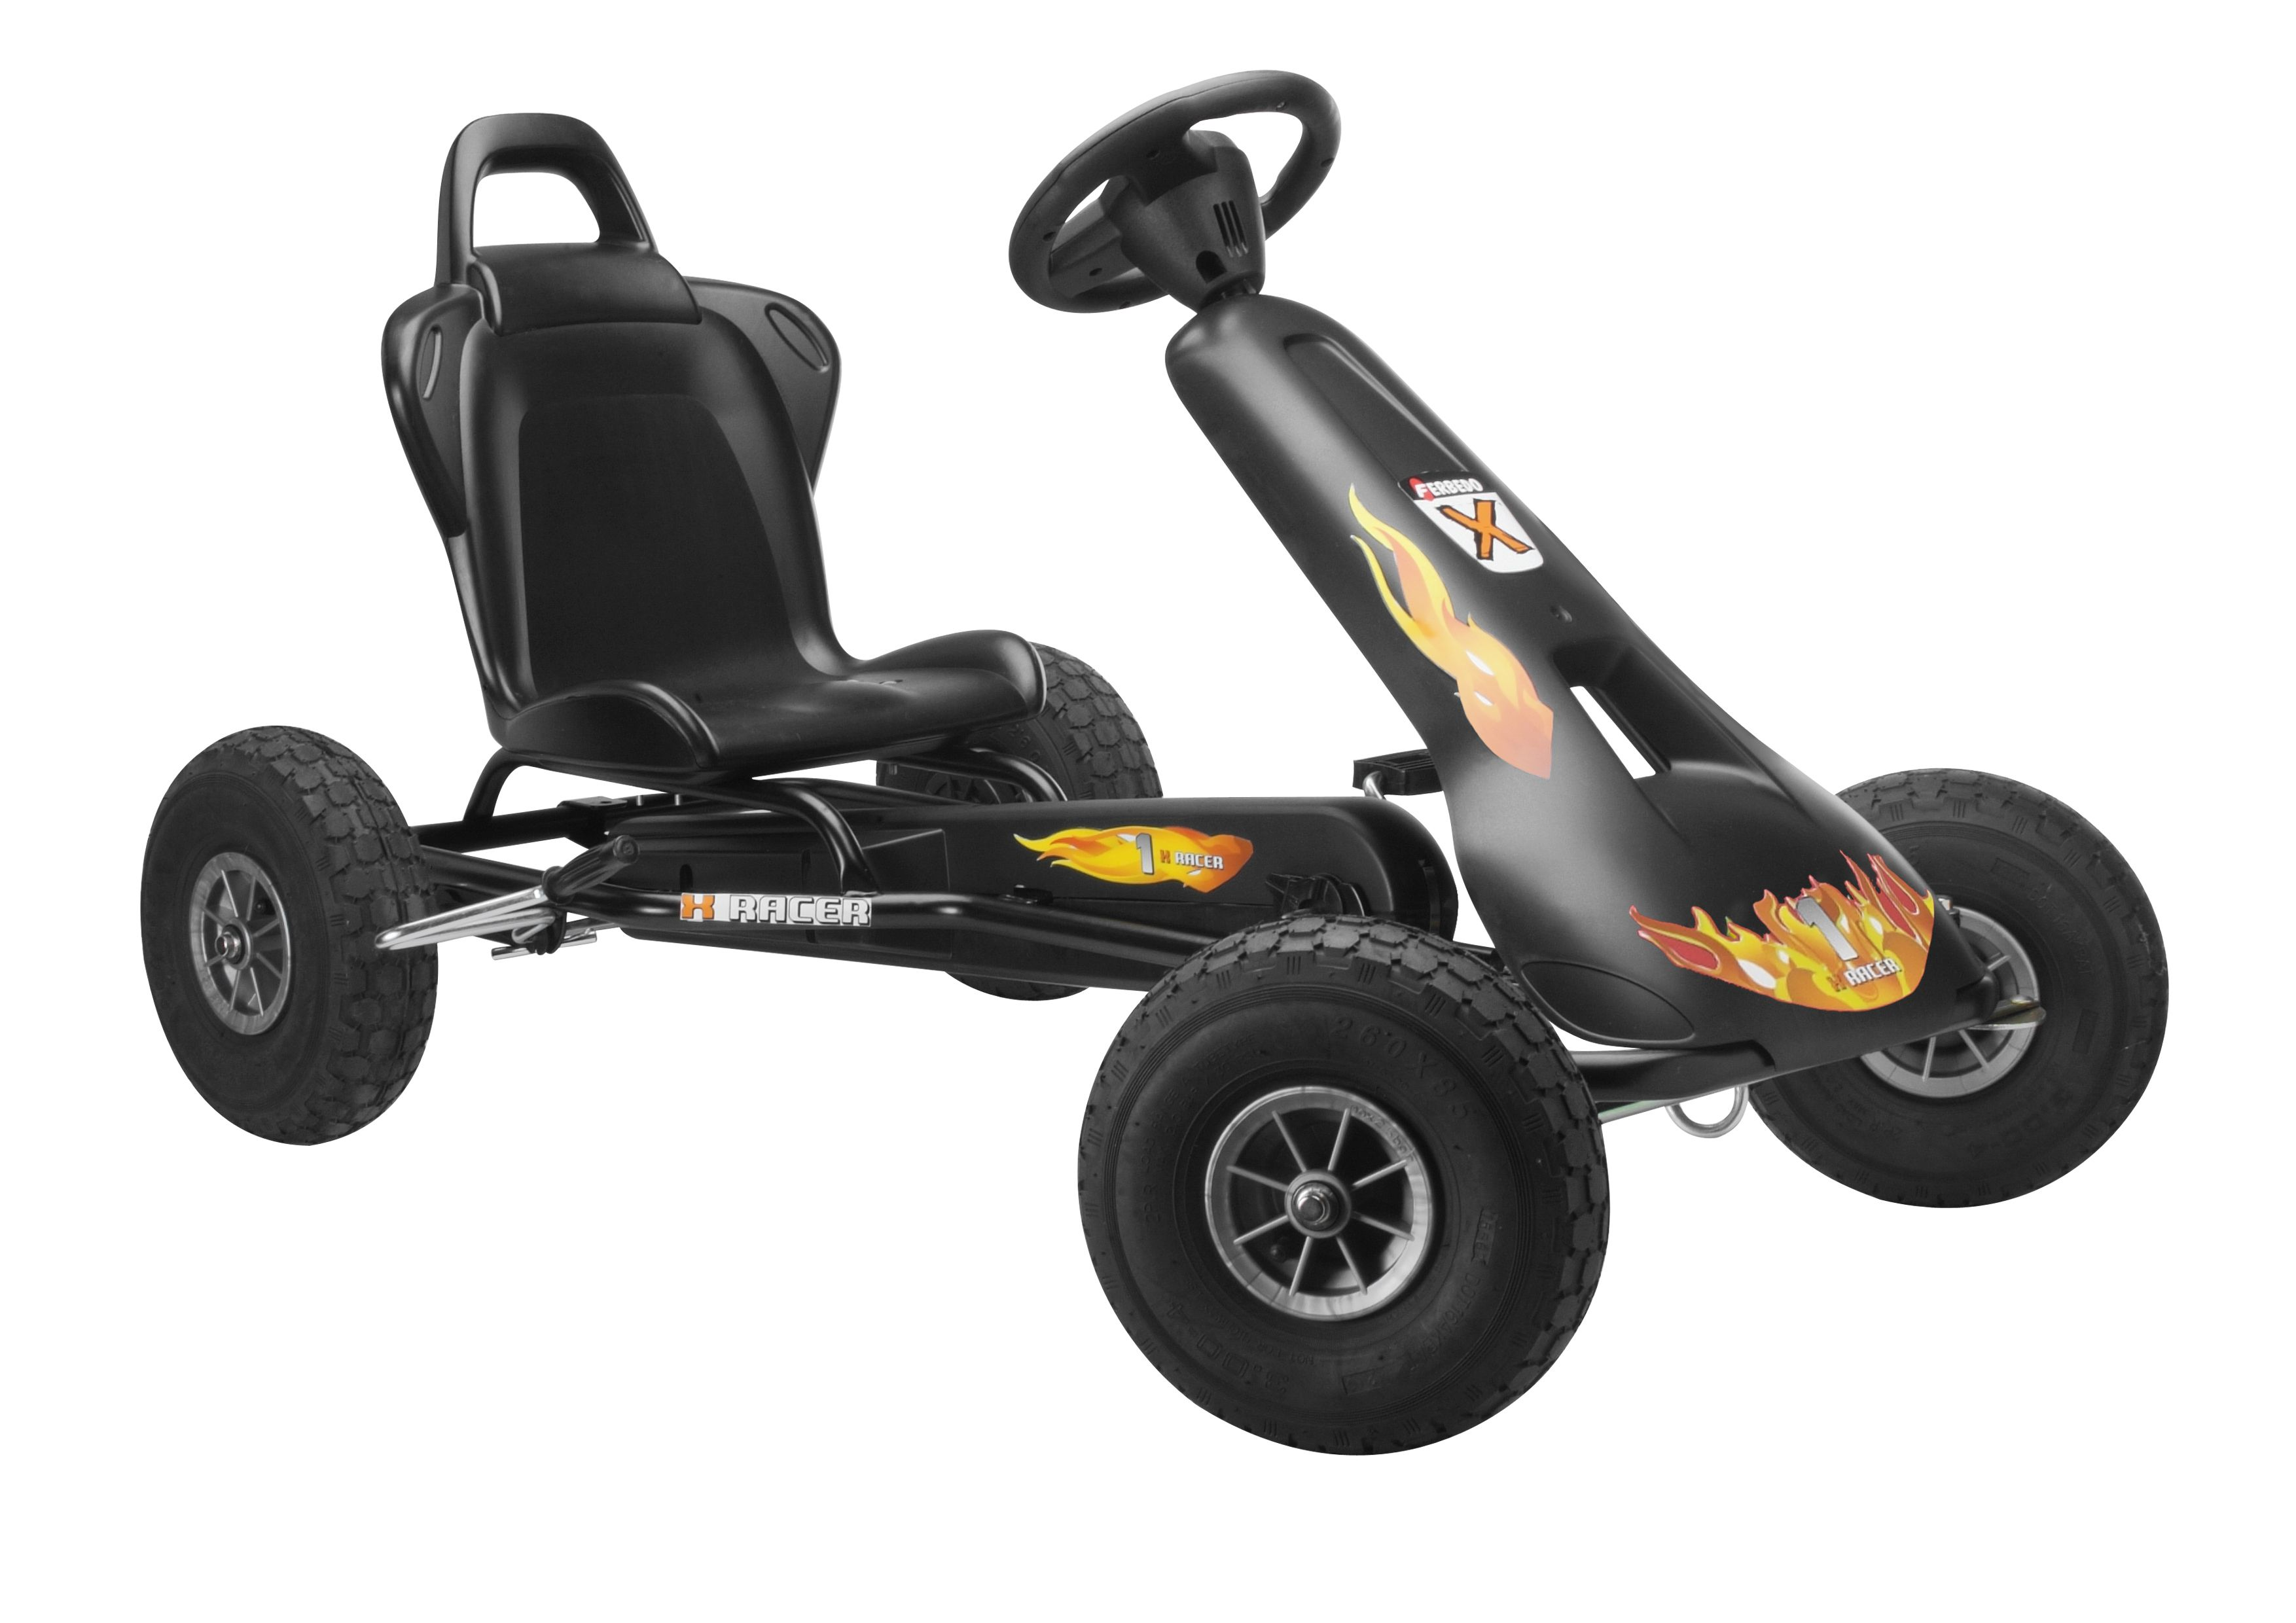 Air Racer ar-2 Go Kart - Black